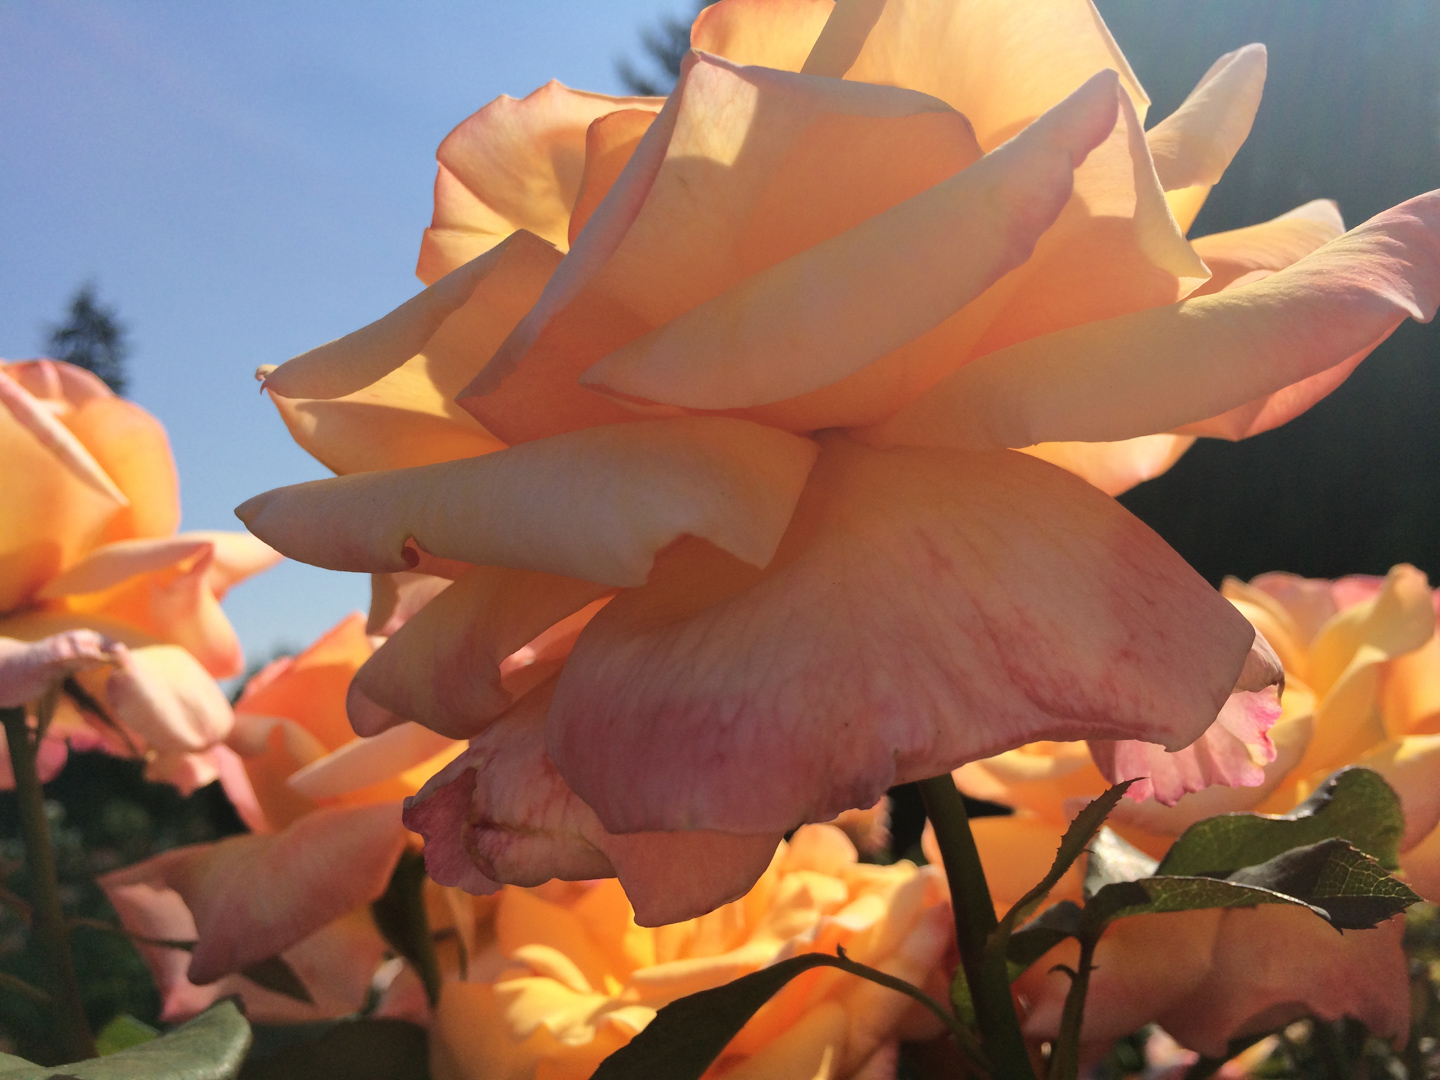 Roses at the Test Gardens